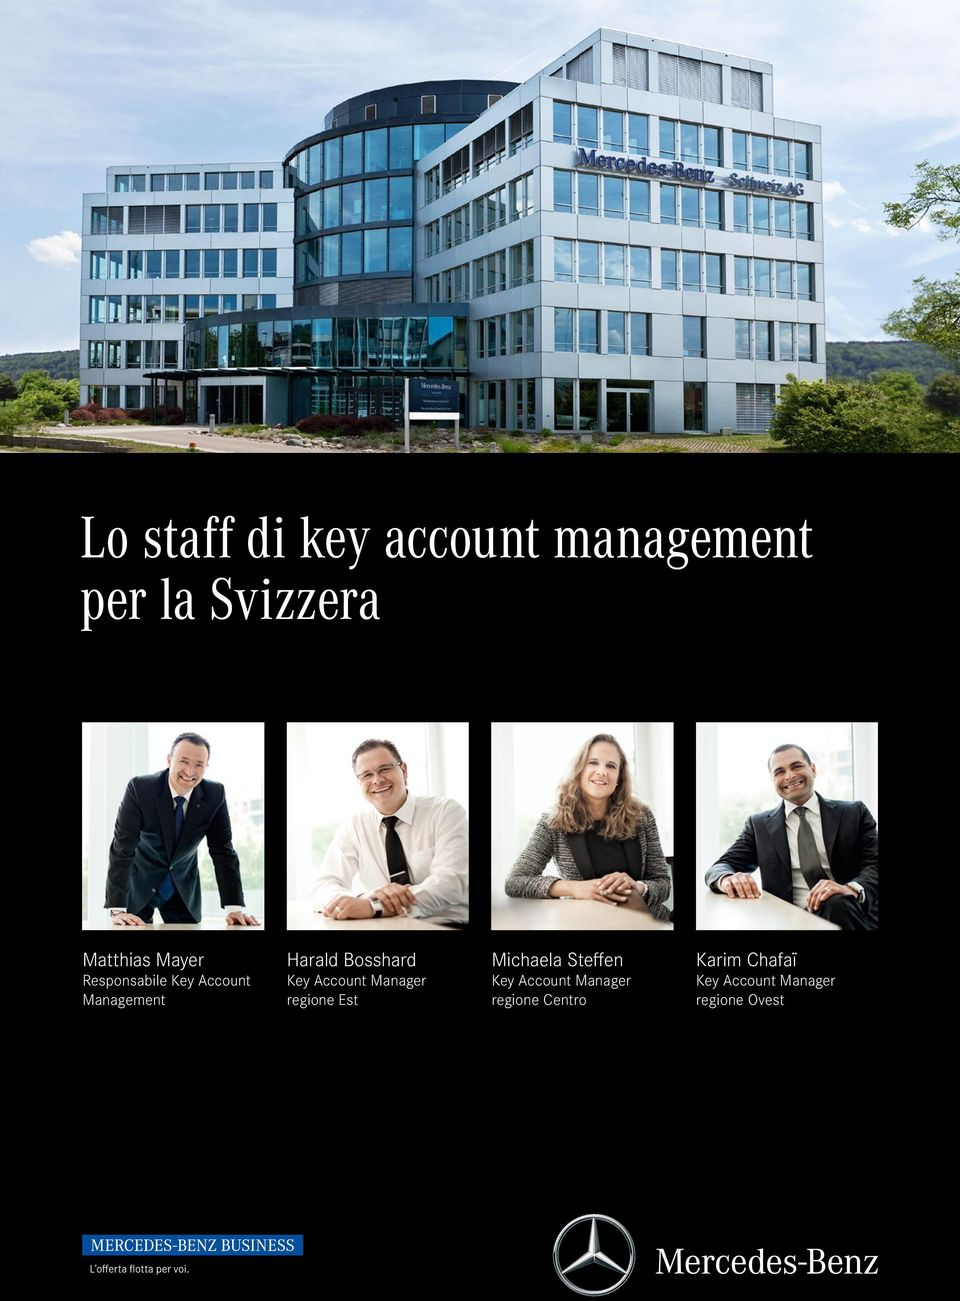 Account Manager regione Est Michaela Steffen Key Account